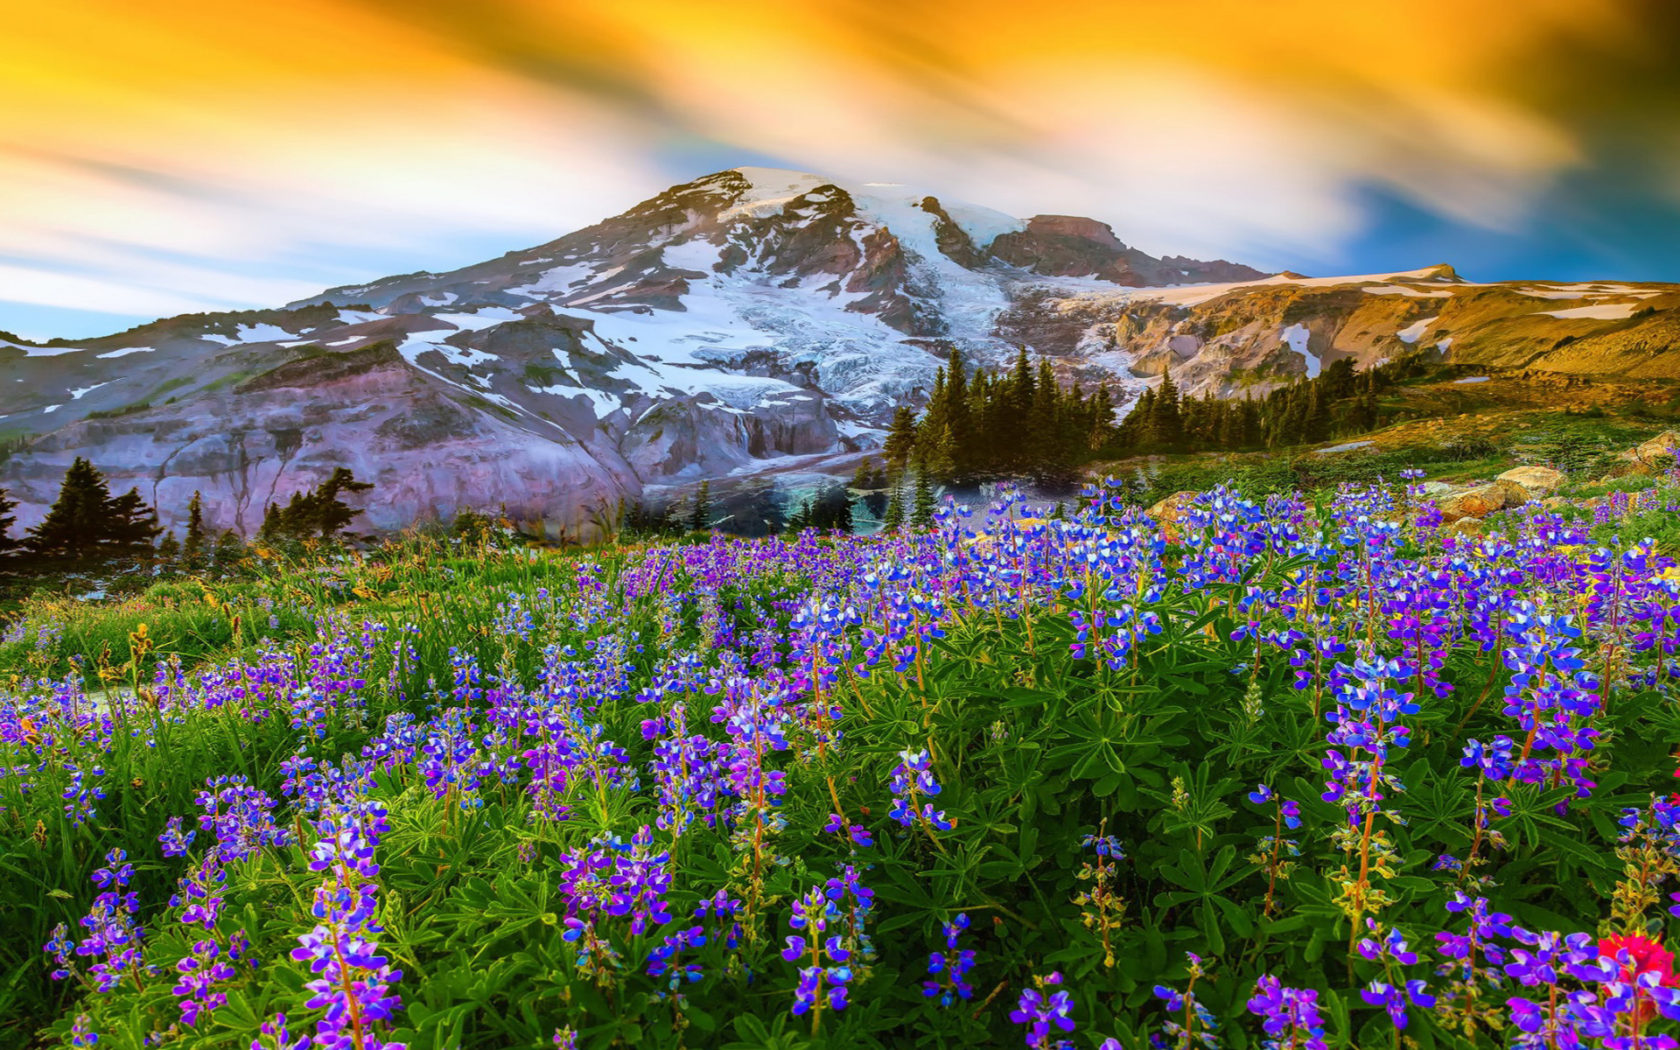 Fall Colors Desktop Wallpaper Beautiful Spring Landscape Nature Flowers Mountain Snow